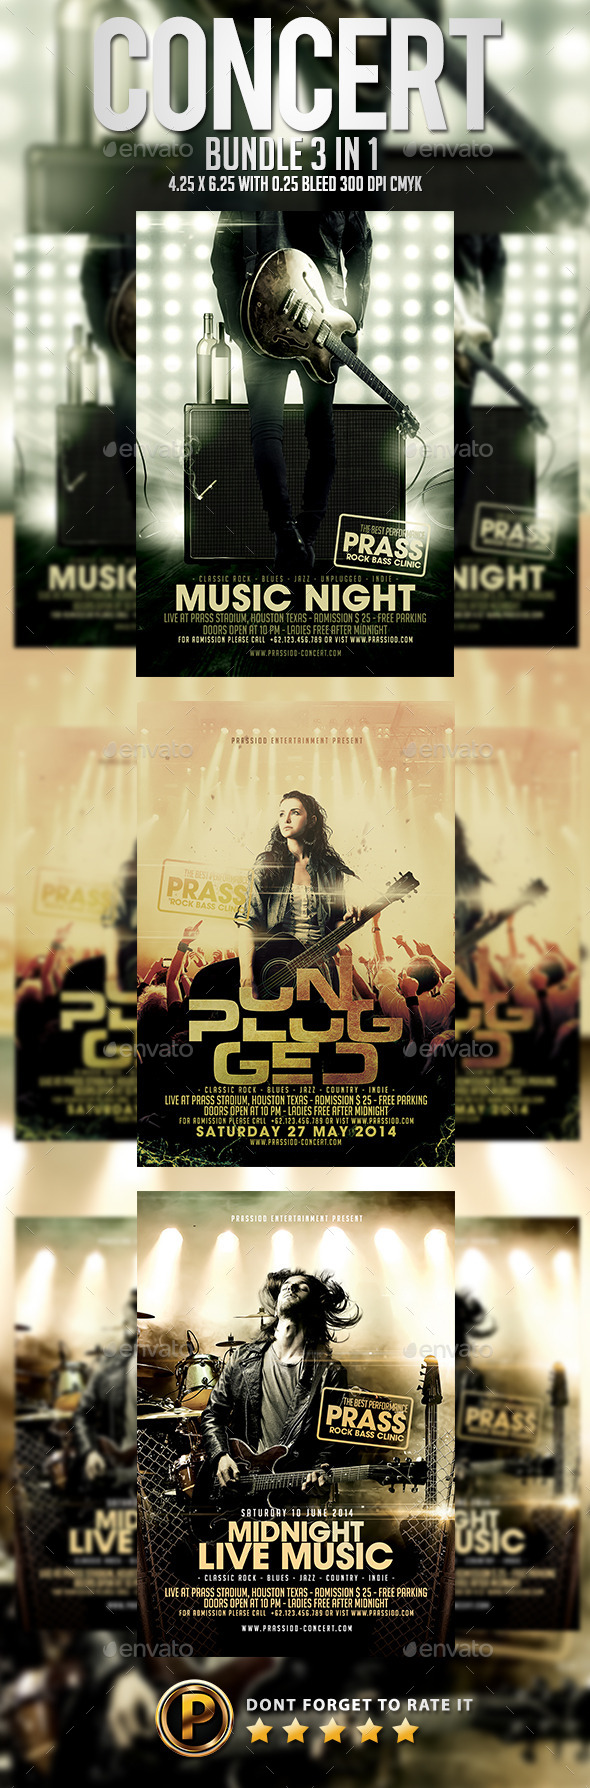 Concert Flyer Template - Bundle 3 in 1 - Concerts Events